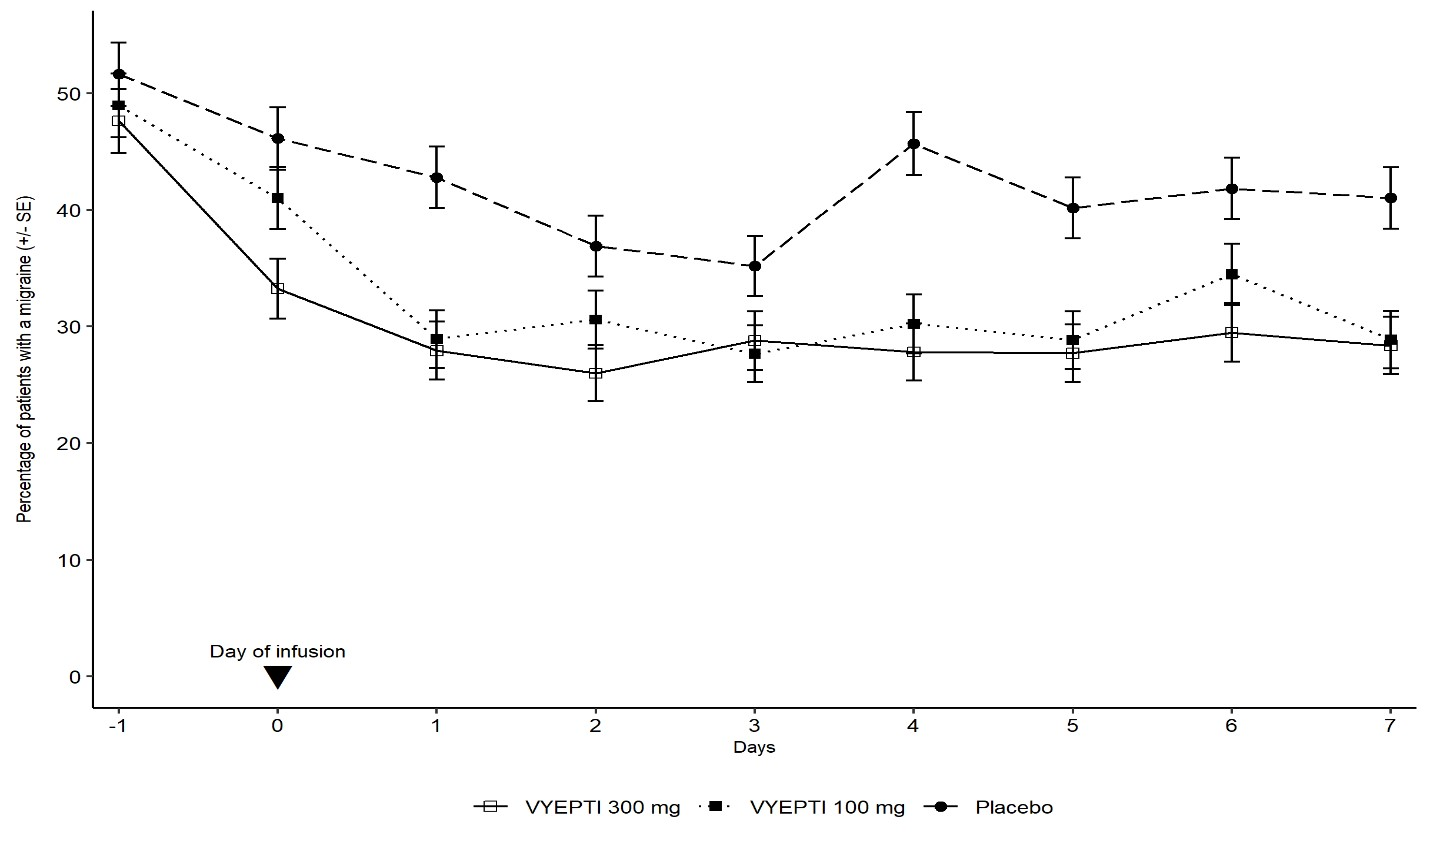 Figure 6. Percentage of Patients with a Migraine from Day -1 (Day Prior to Infusion) to Day 7 in Study 2